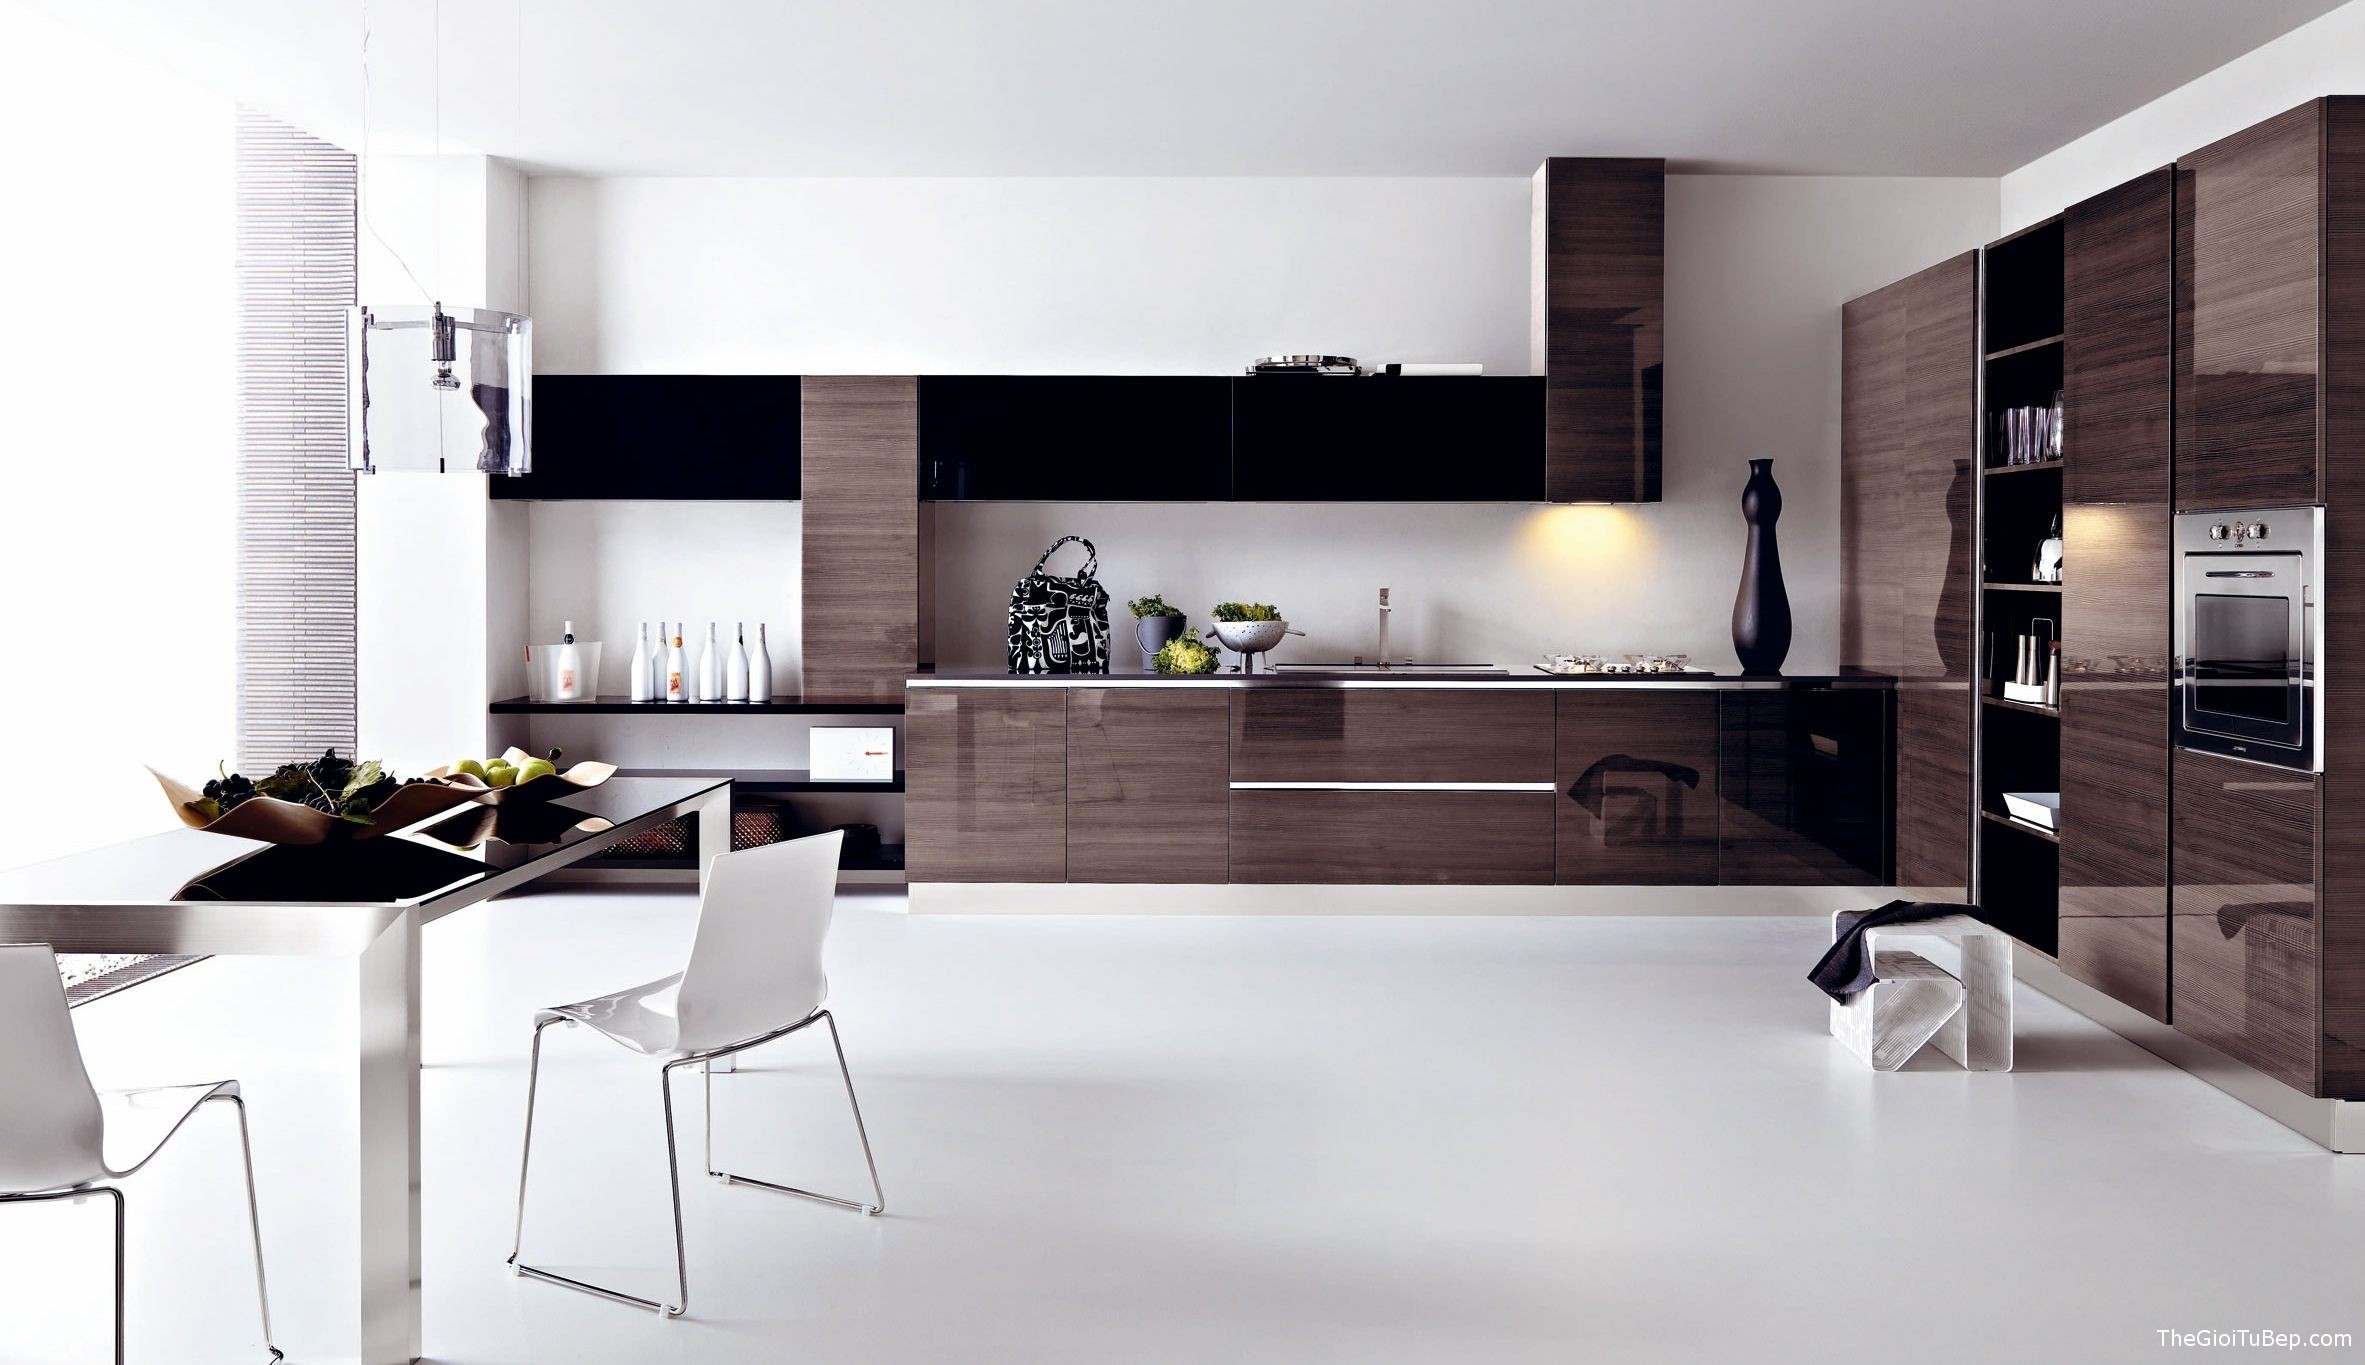 modern-kitchen-ideas-with-gloosy-black-kitchen-cabinet-and-glass-on-top-table-and-white-chair-dining-set-kitchen-photo-modern-kitchen-ideas